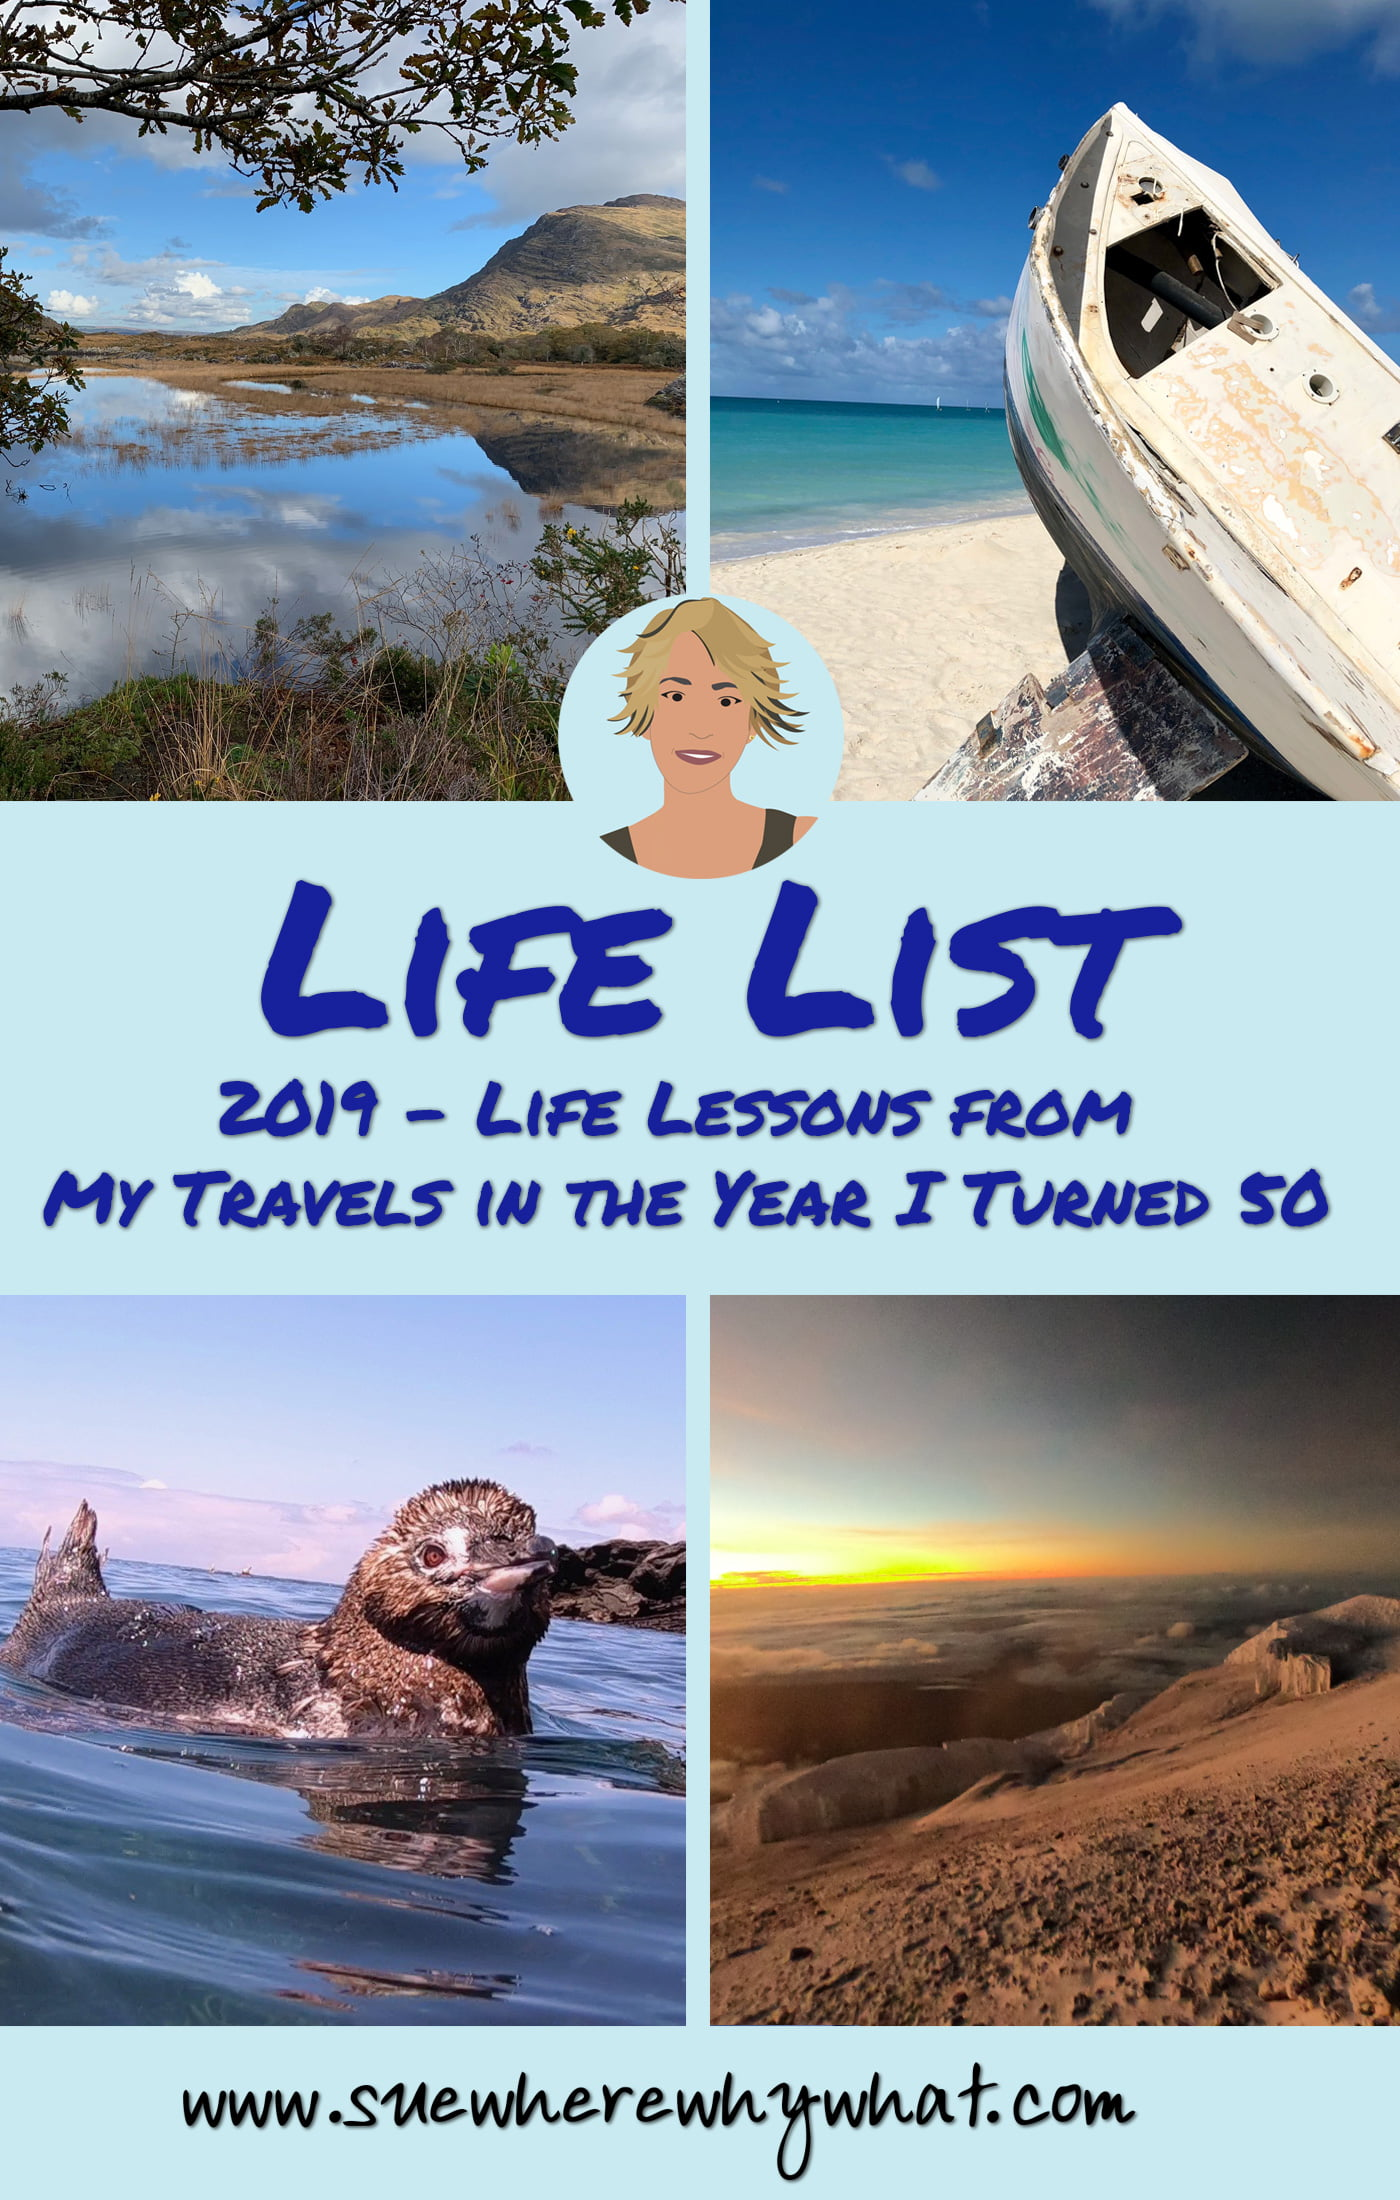 2019 – Life Lessons from My Travels in the Year I Turned 50